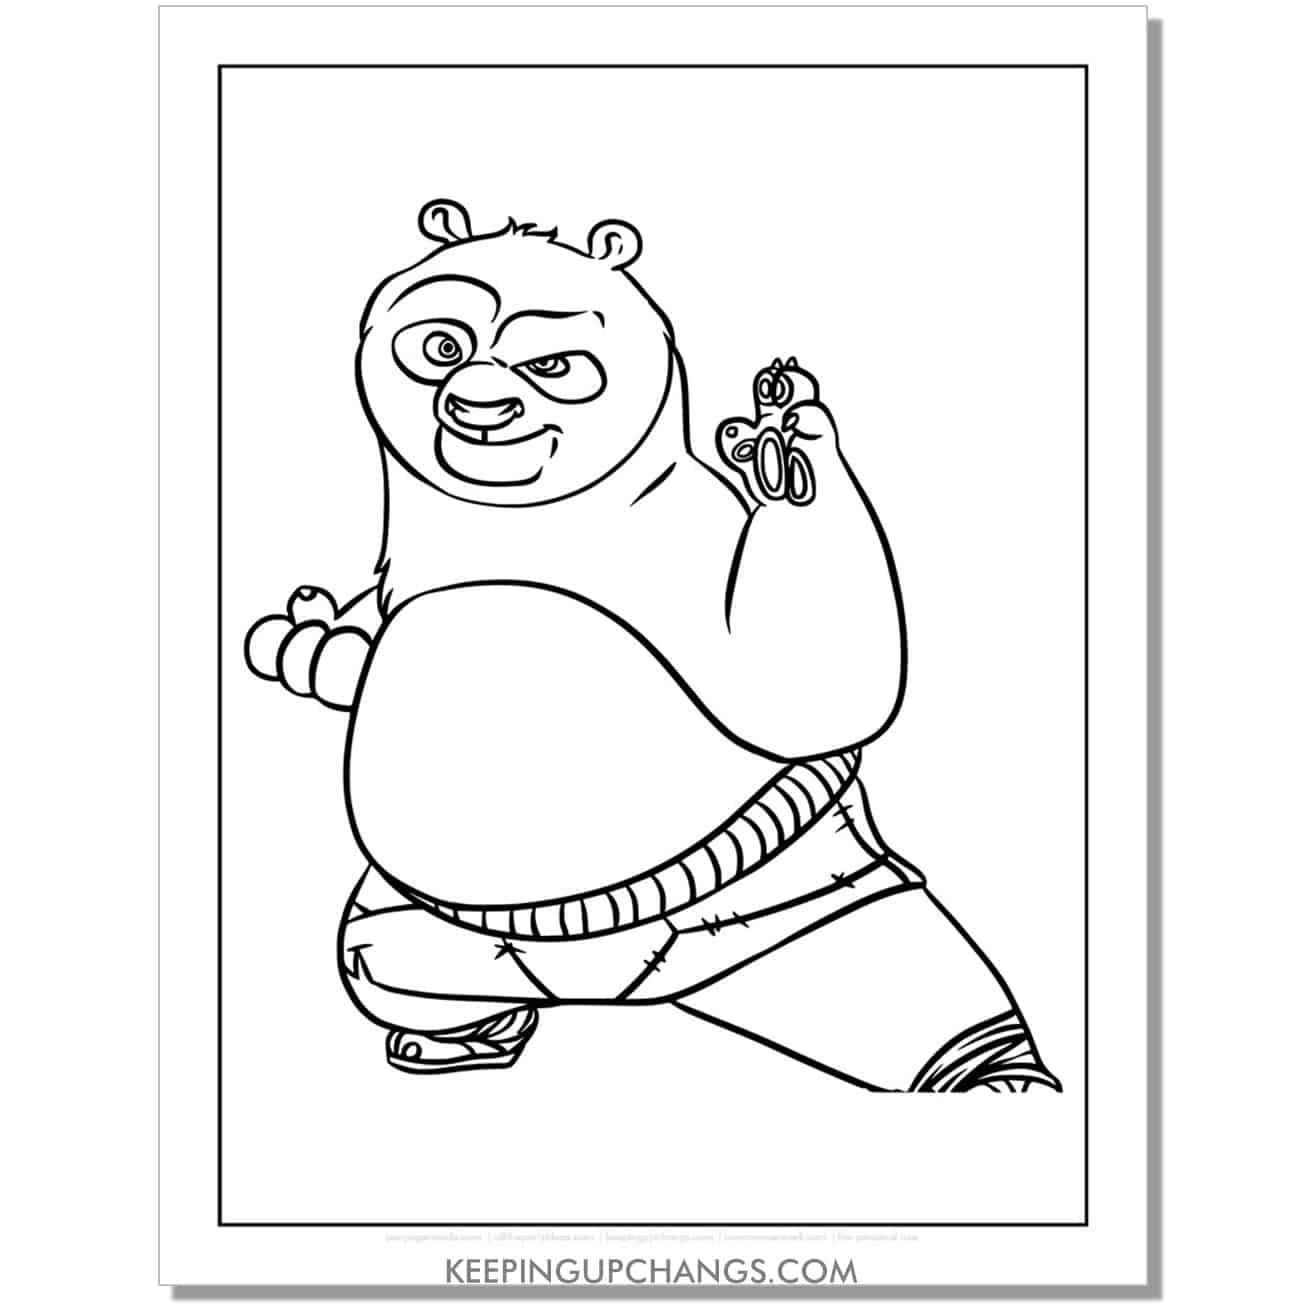 free po martial art stance coloring page.